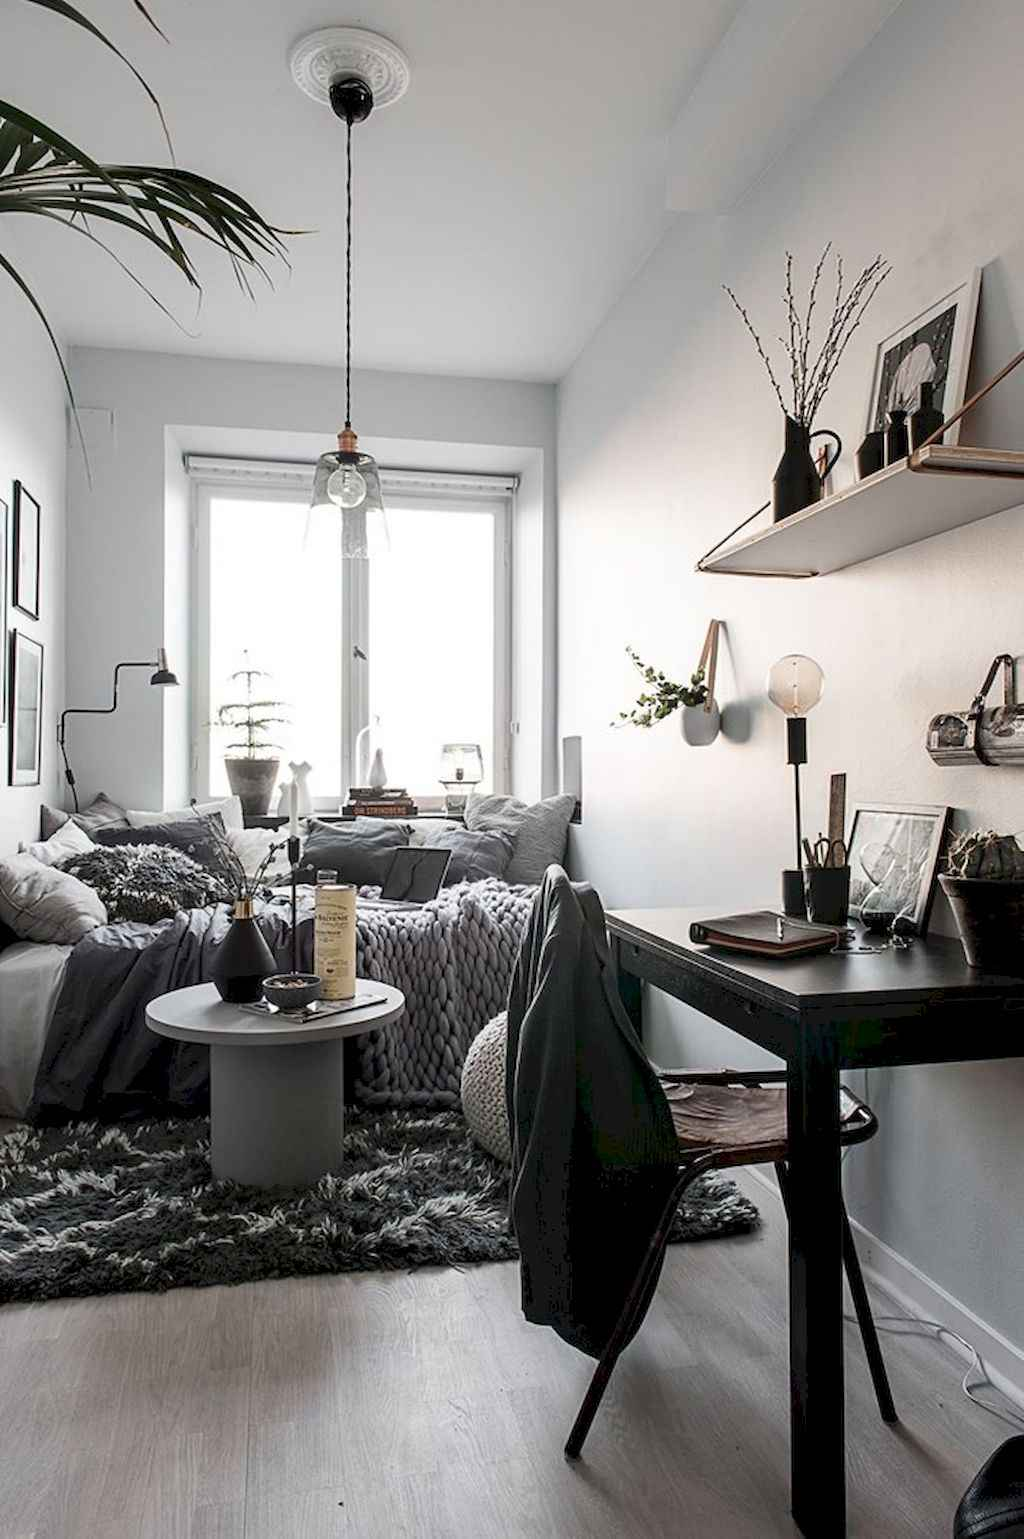 Small apartment studio decorating ideas on a budget (21)